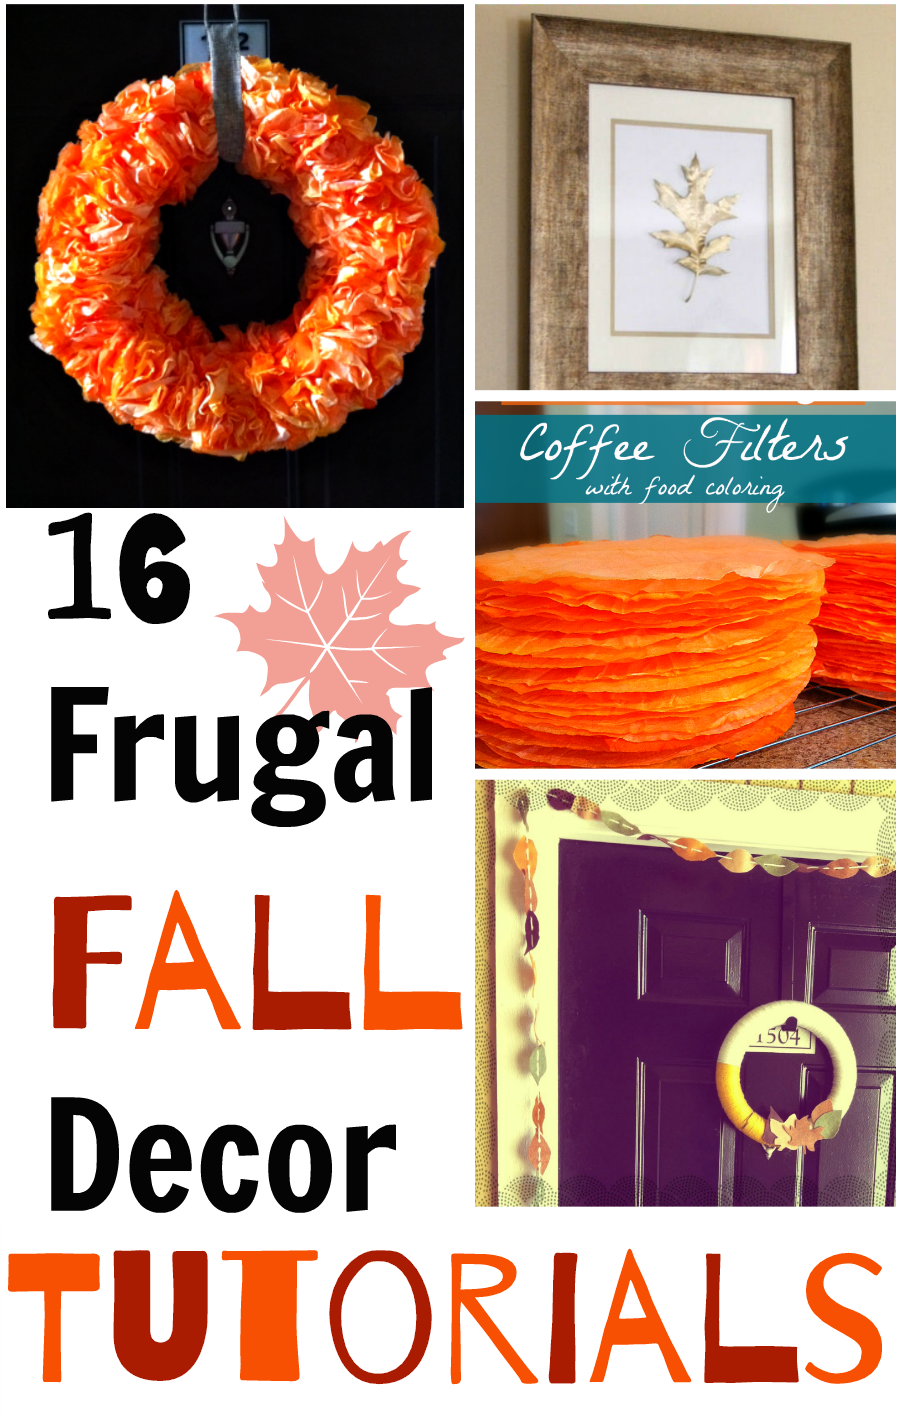 16 frugal fall decor ideas and tutorials